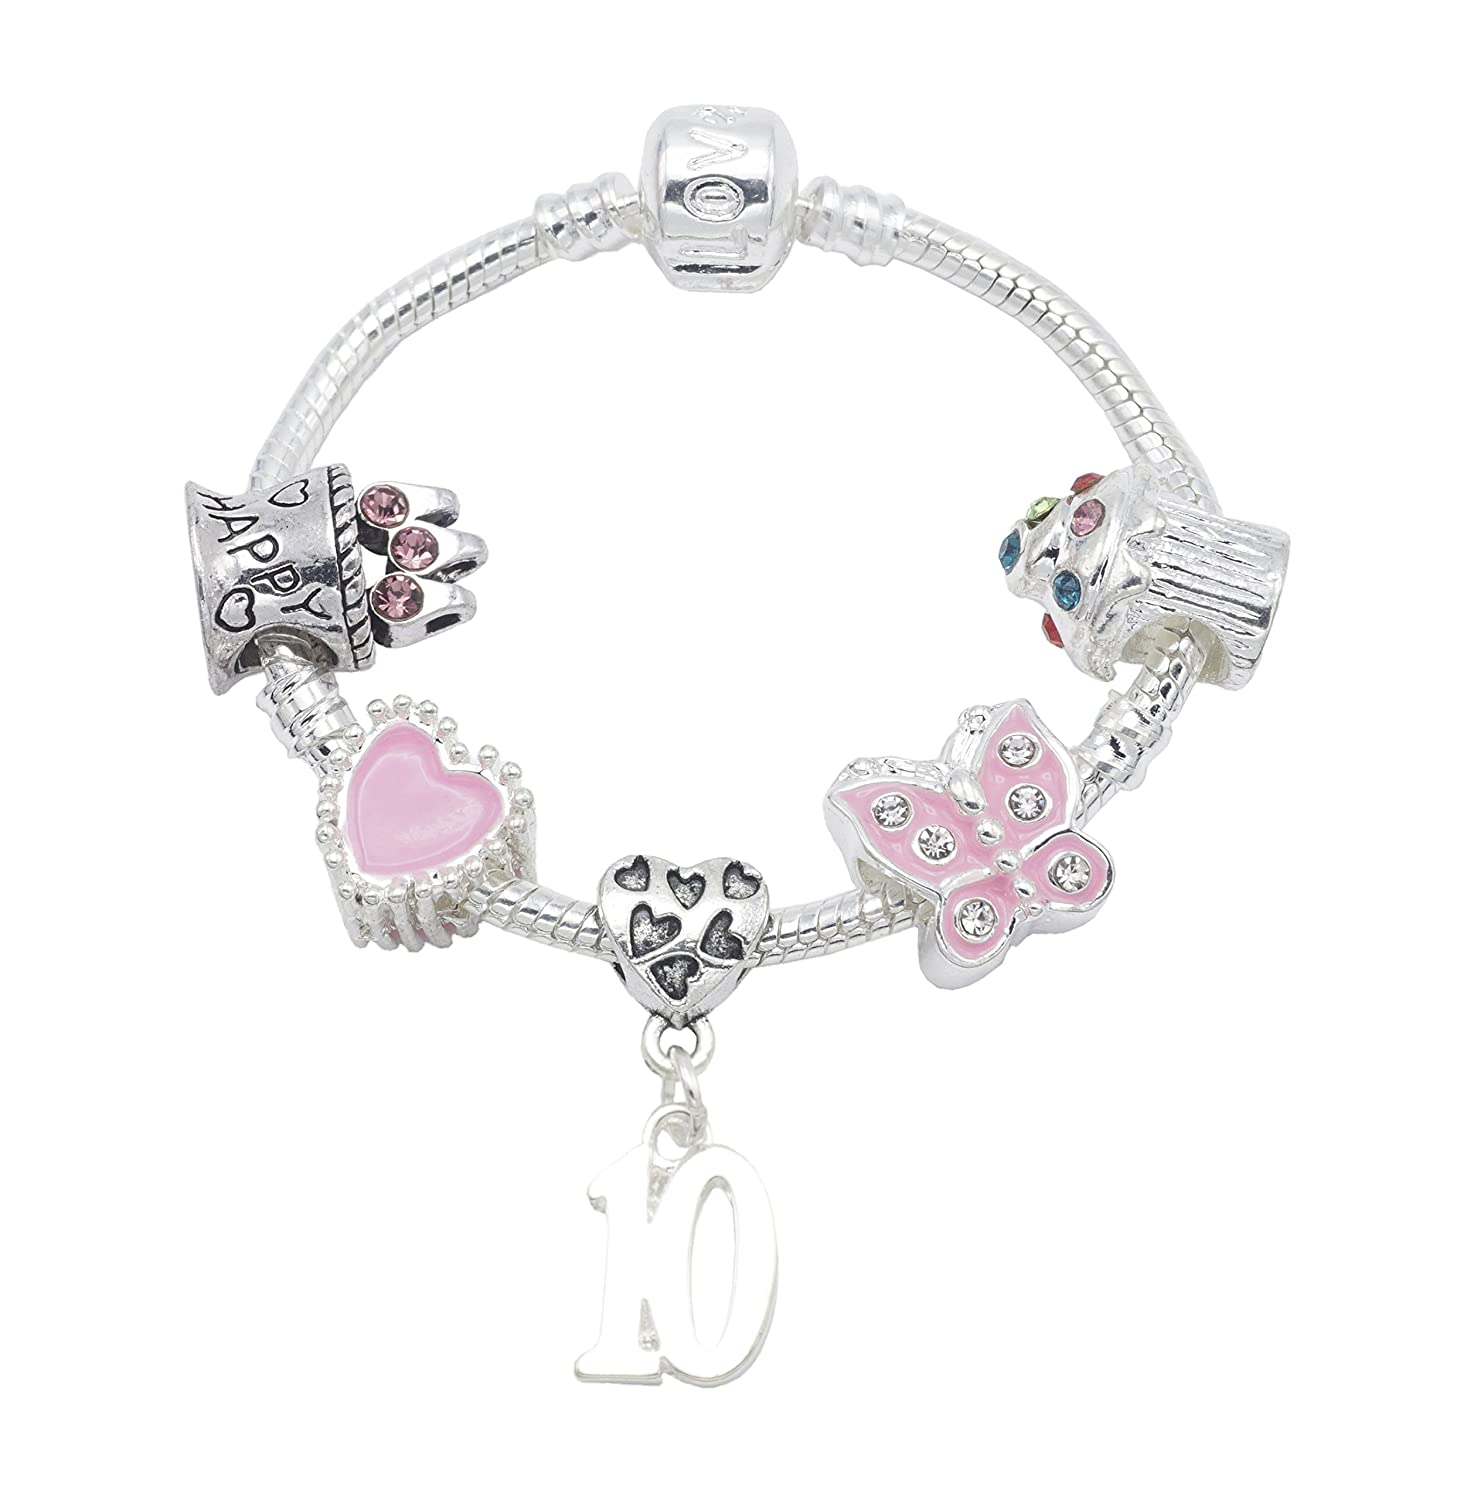 10th Birthday Silver Plated Charm Bracelet for Girls Presented in High Quality Gift Pouch Jewellery Hut BRSPKID10